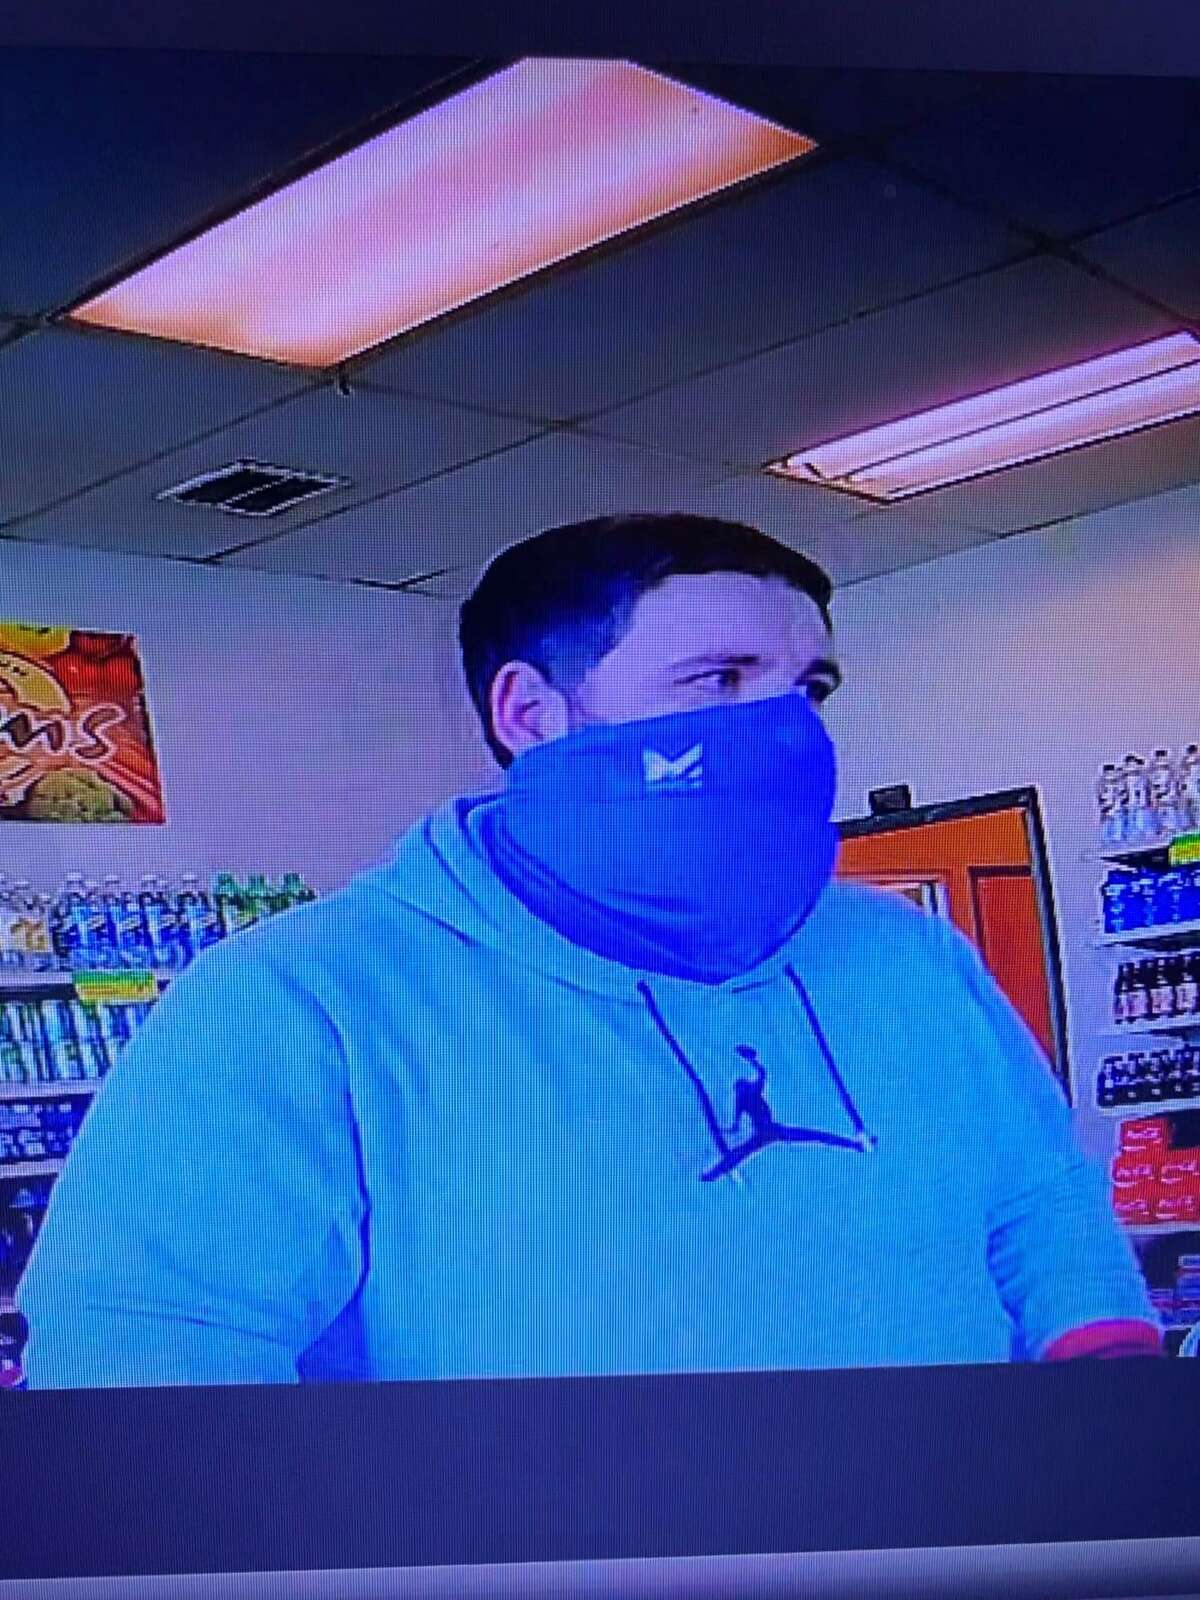 Police say this man stole 30 to 35 bags of shrimp from a Plymouth, Conn., store on Feb. 21, 2021.